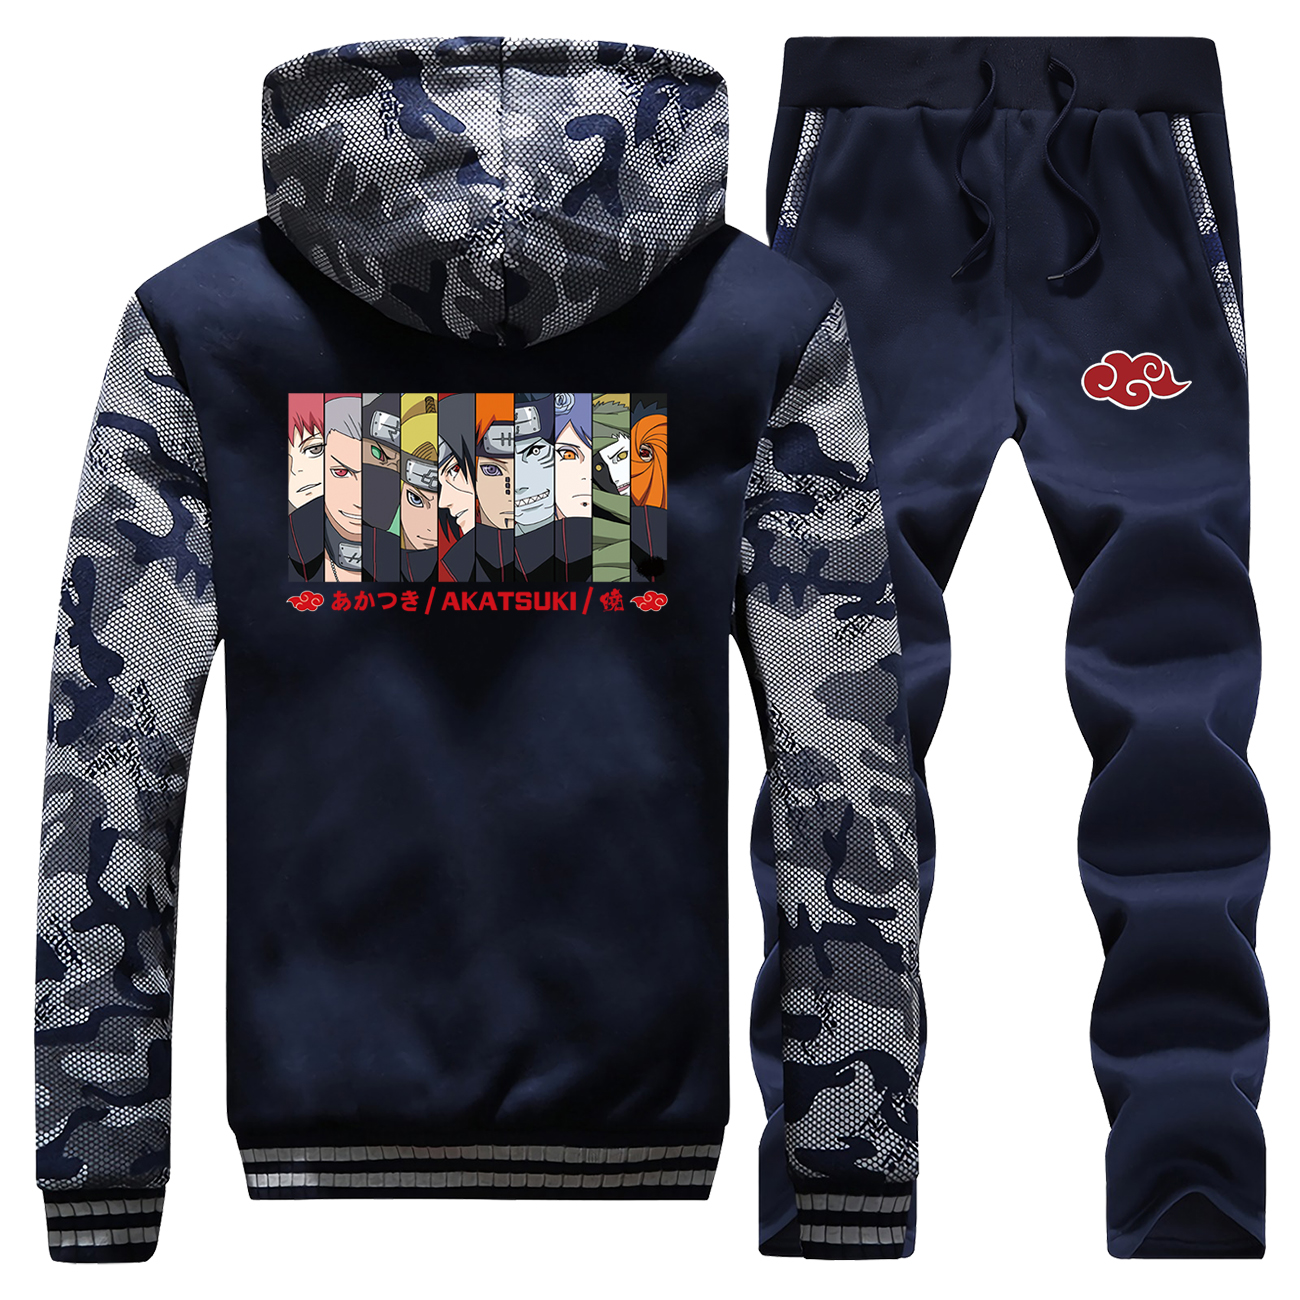 Naruto Fashion Camo Jackets Men Japanese Anime Sets Akatsuki Casual Men's Full Suit Tracksuit Winter Warm Jacket Fleece Men Suit